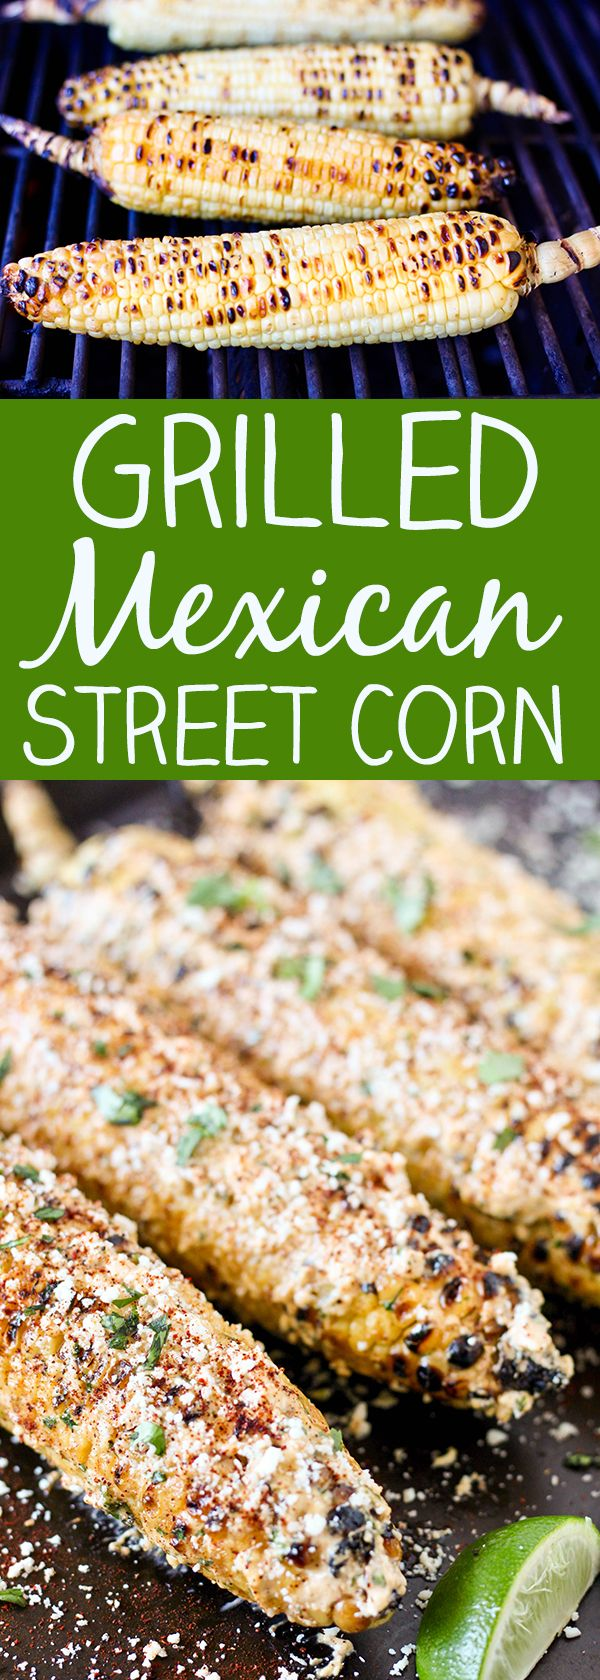 Grilled Mexican Street Corn Recipe - this amazing corn on the cob is bursting with fresh mexican flavors!